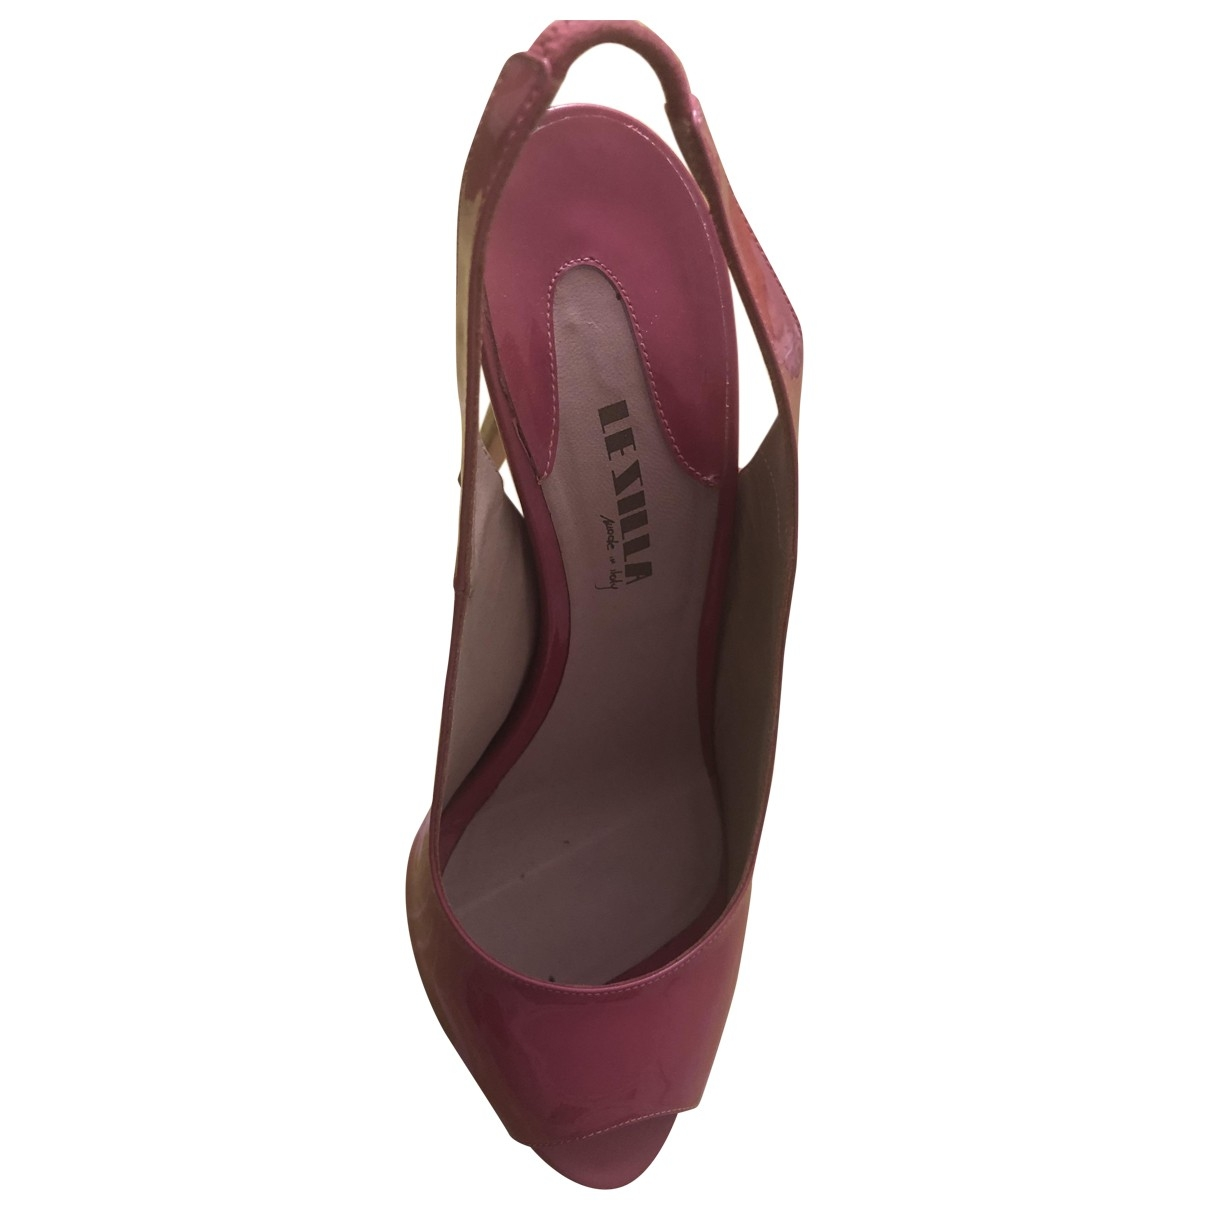 Le Silla \N Pink Leather Heels for Women 40 EU